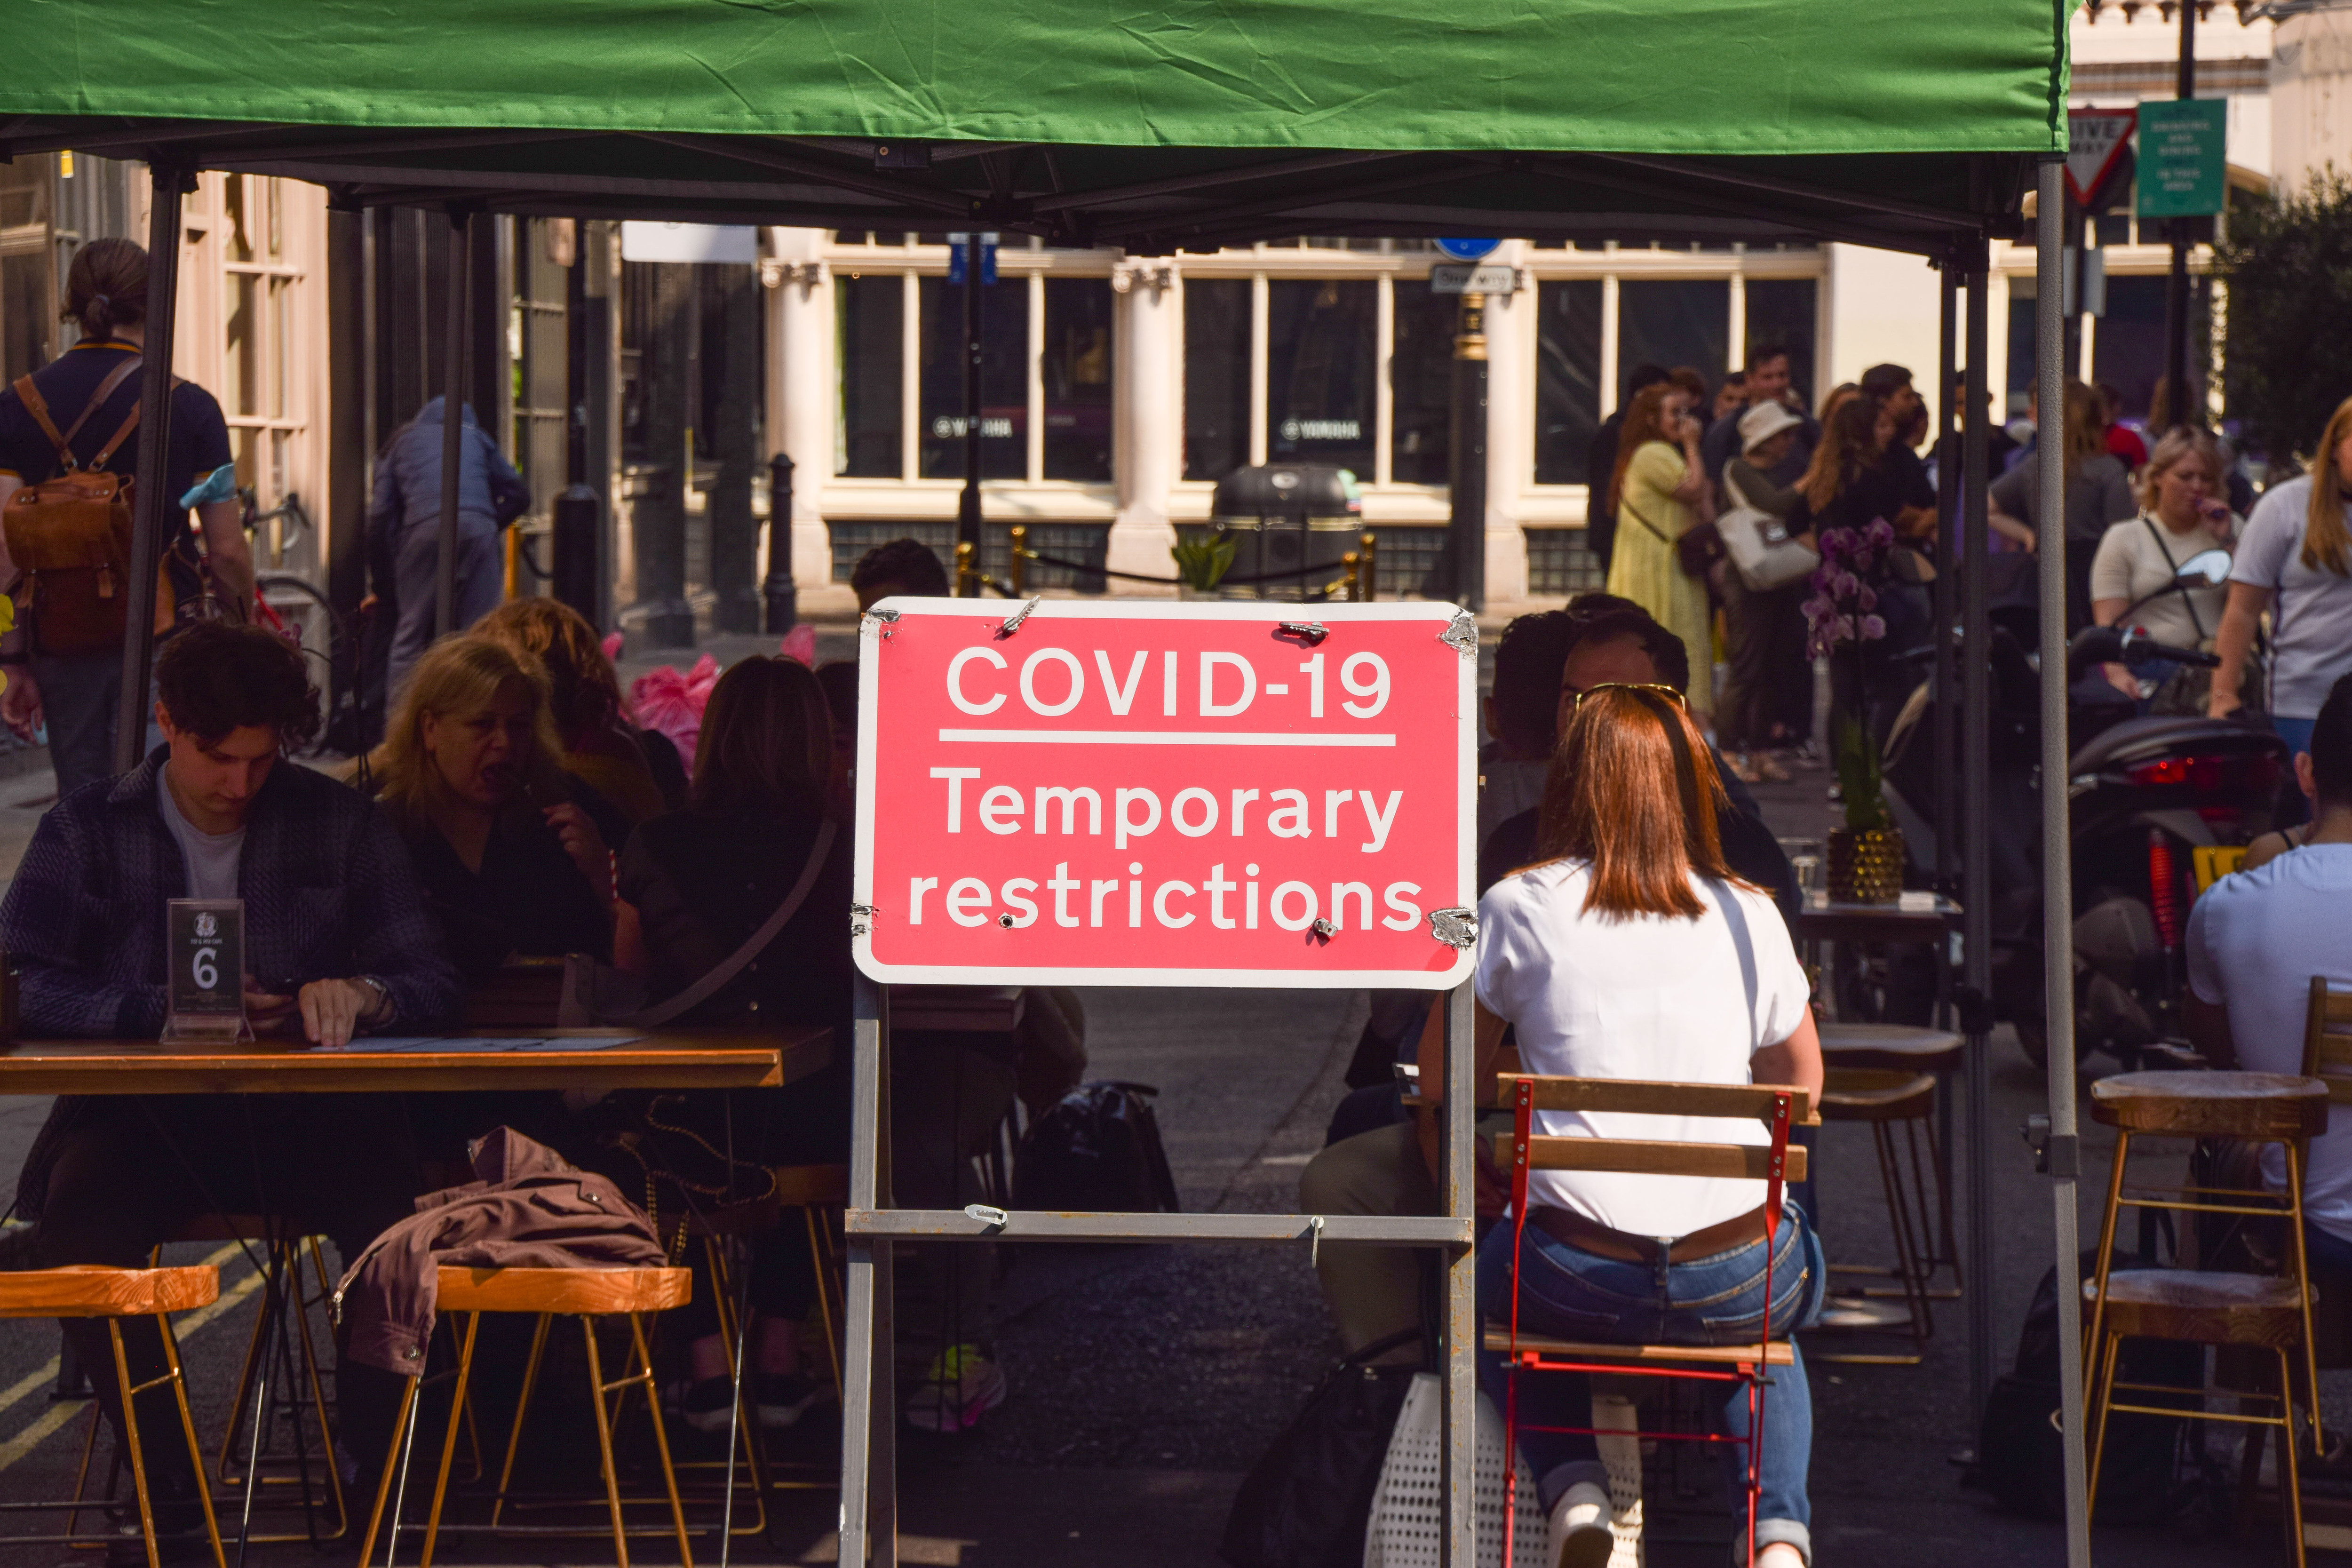 <p>LONDON, UNITED KINGDOM - 2021/09/05: A 'COVID-19 Temporary Restrictions' sign is seen outside busy restaurants and cafes in D'Arblay Street, as temporary al fresco, street seating continues in Soho. Several streets in Central London have been blocked for traffic at certain times of the day and at weekends to allow street seating at bars, cafes and restaurants during the coronavirus pandemic. (Photo by Vuk Valcic/SOPA Images/LightRocket via Getty Images)</p>